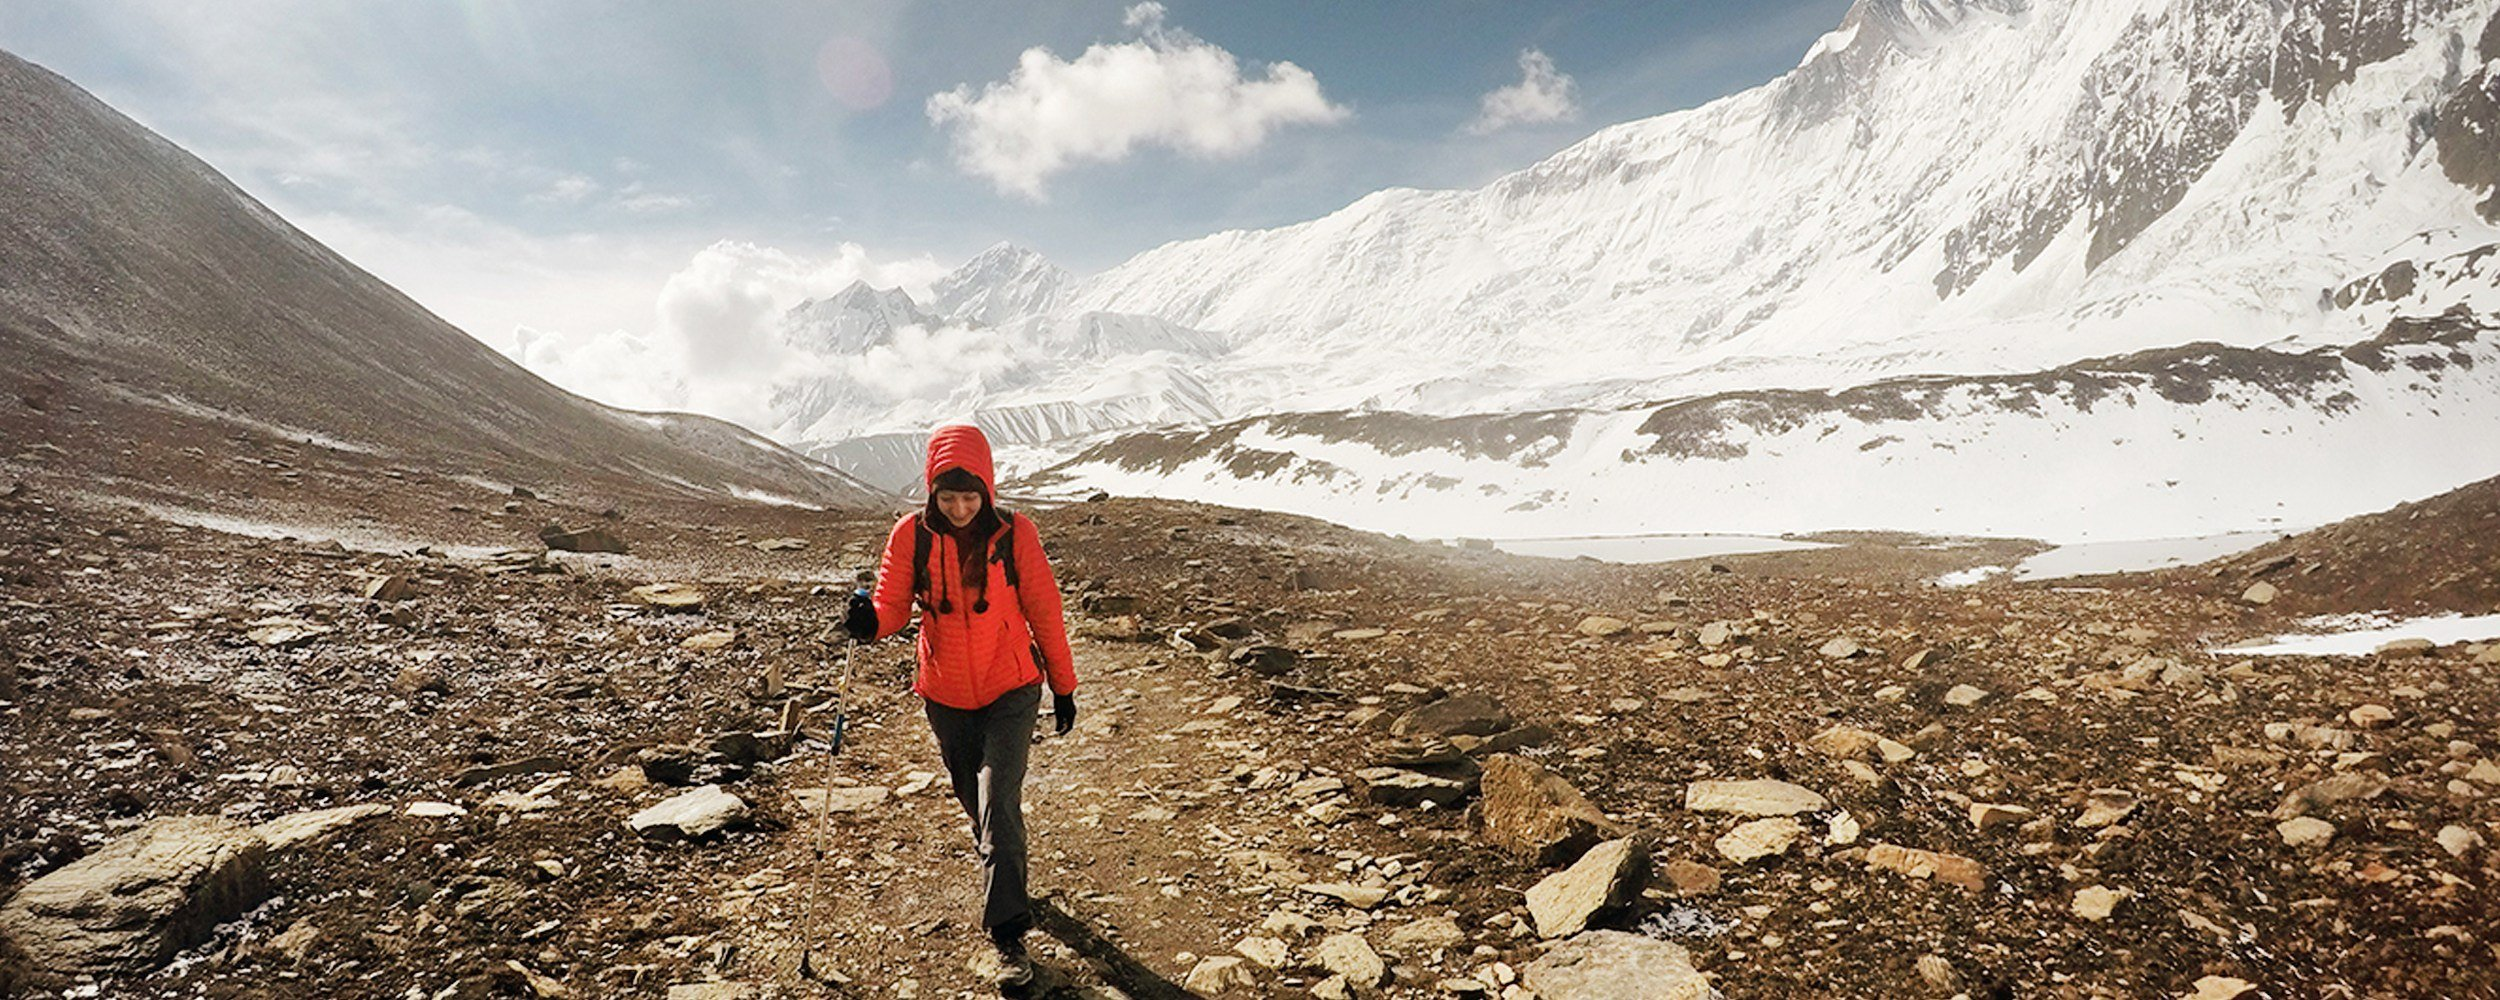 annapurna-area-trekking-to-tilicho-lake